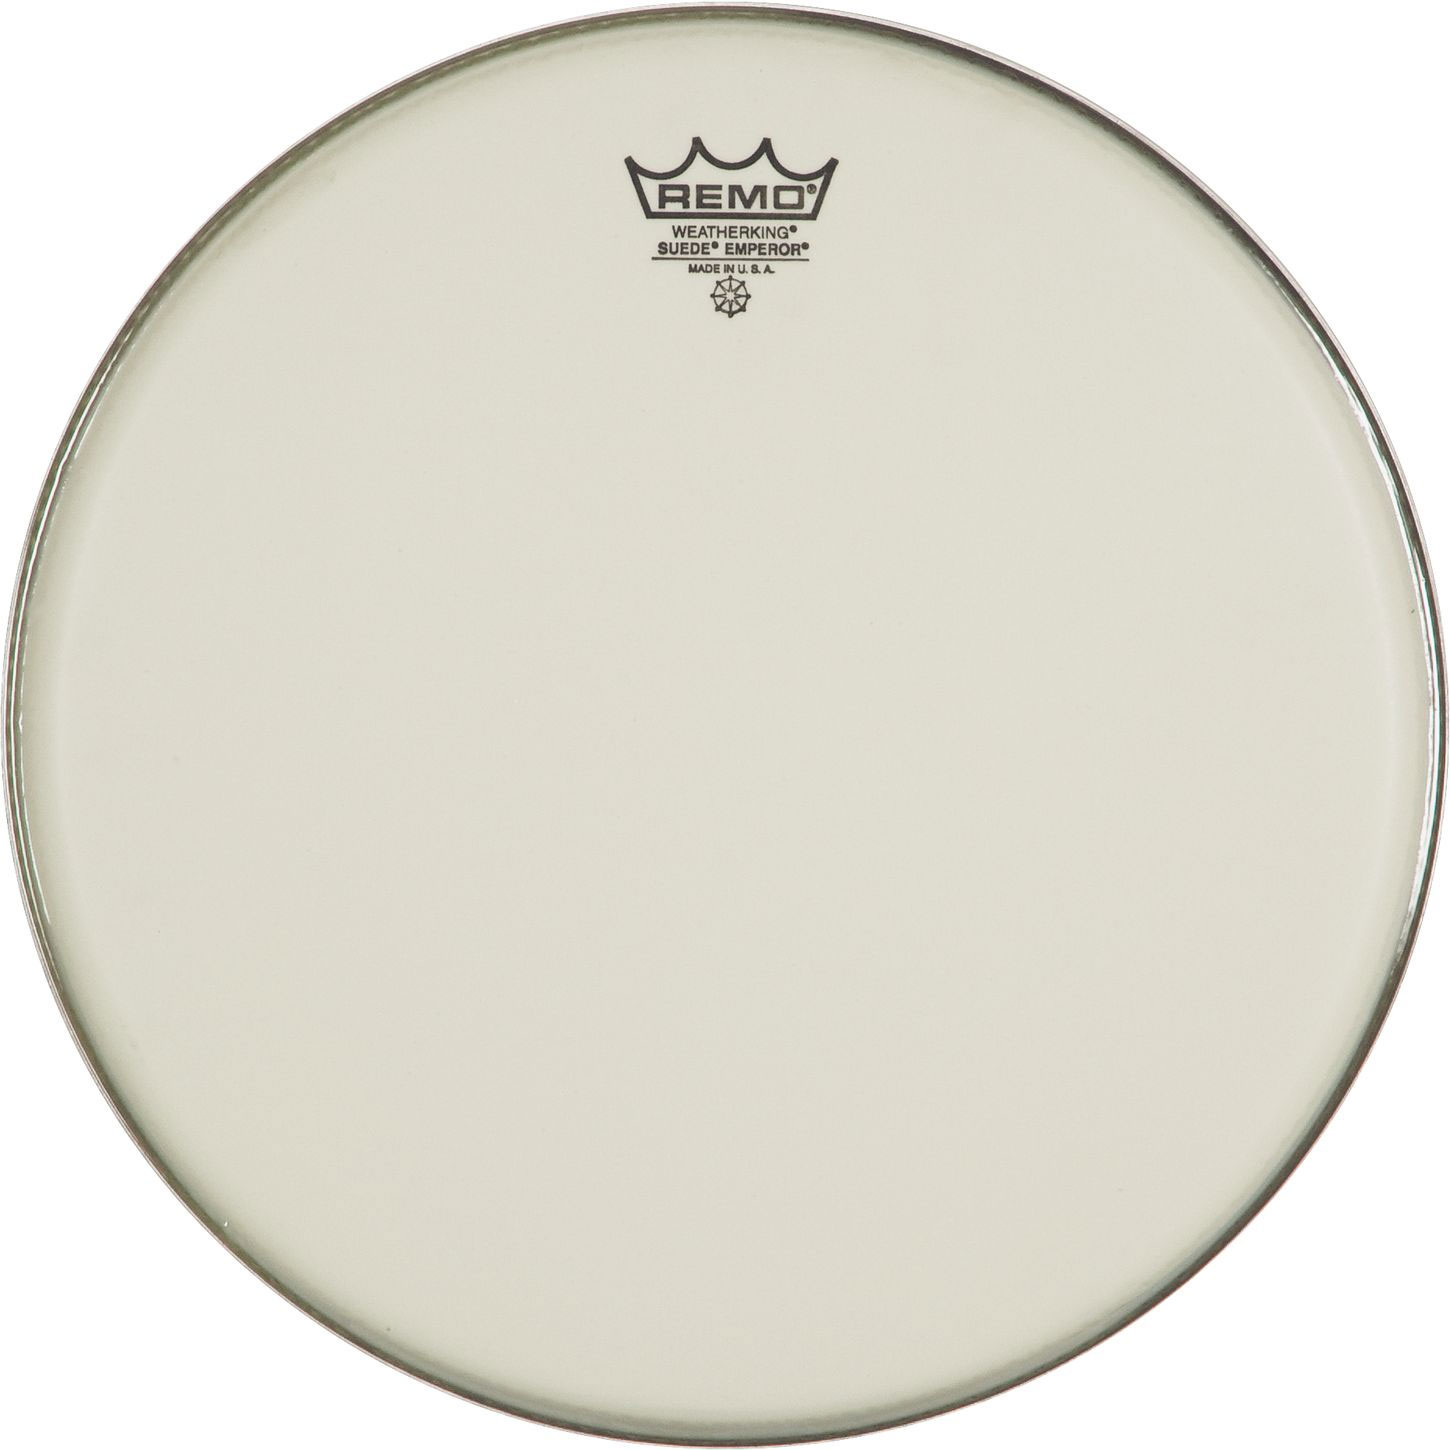 "Remo 8"" Emperor Suede Drum Head"